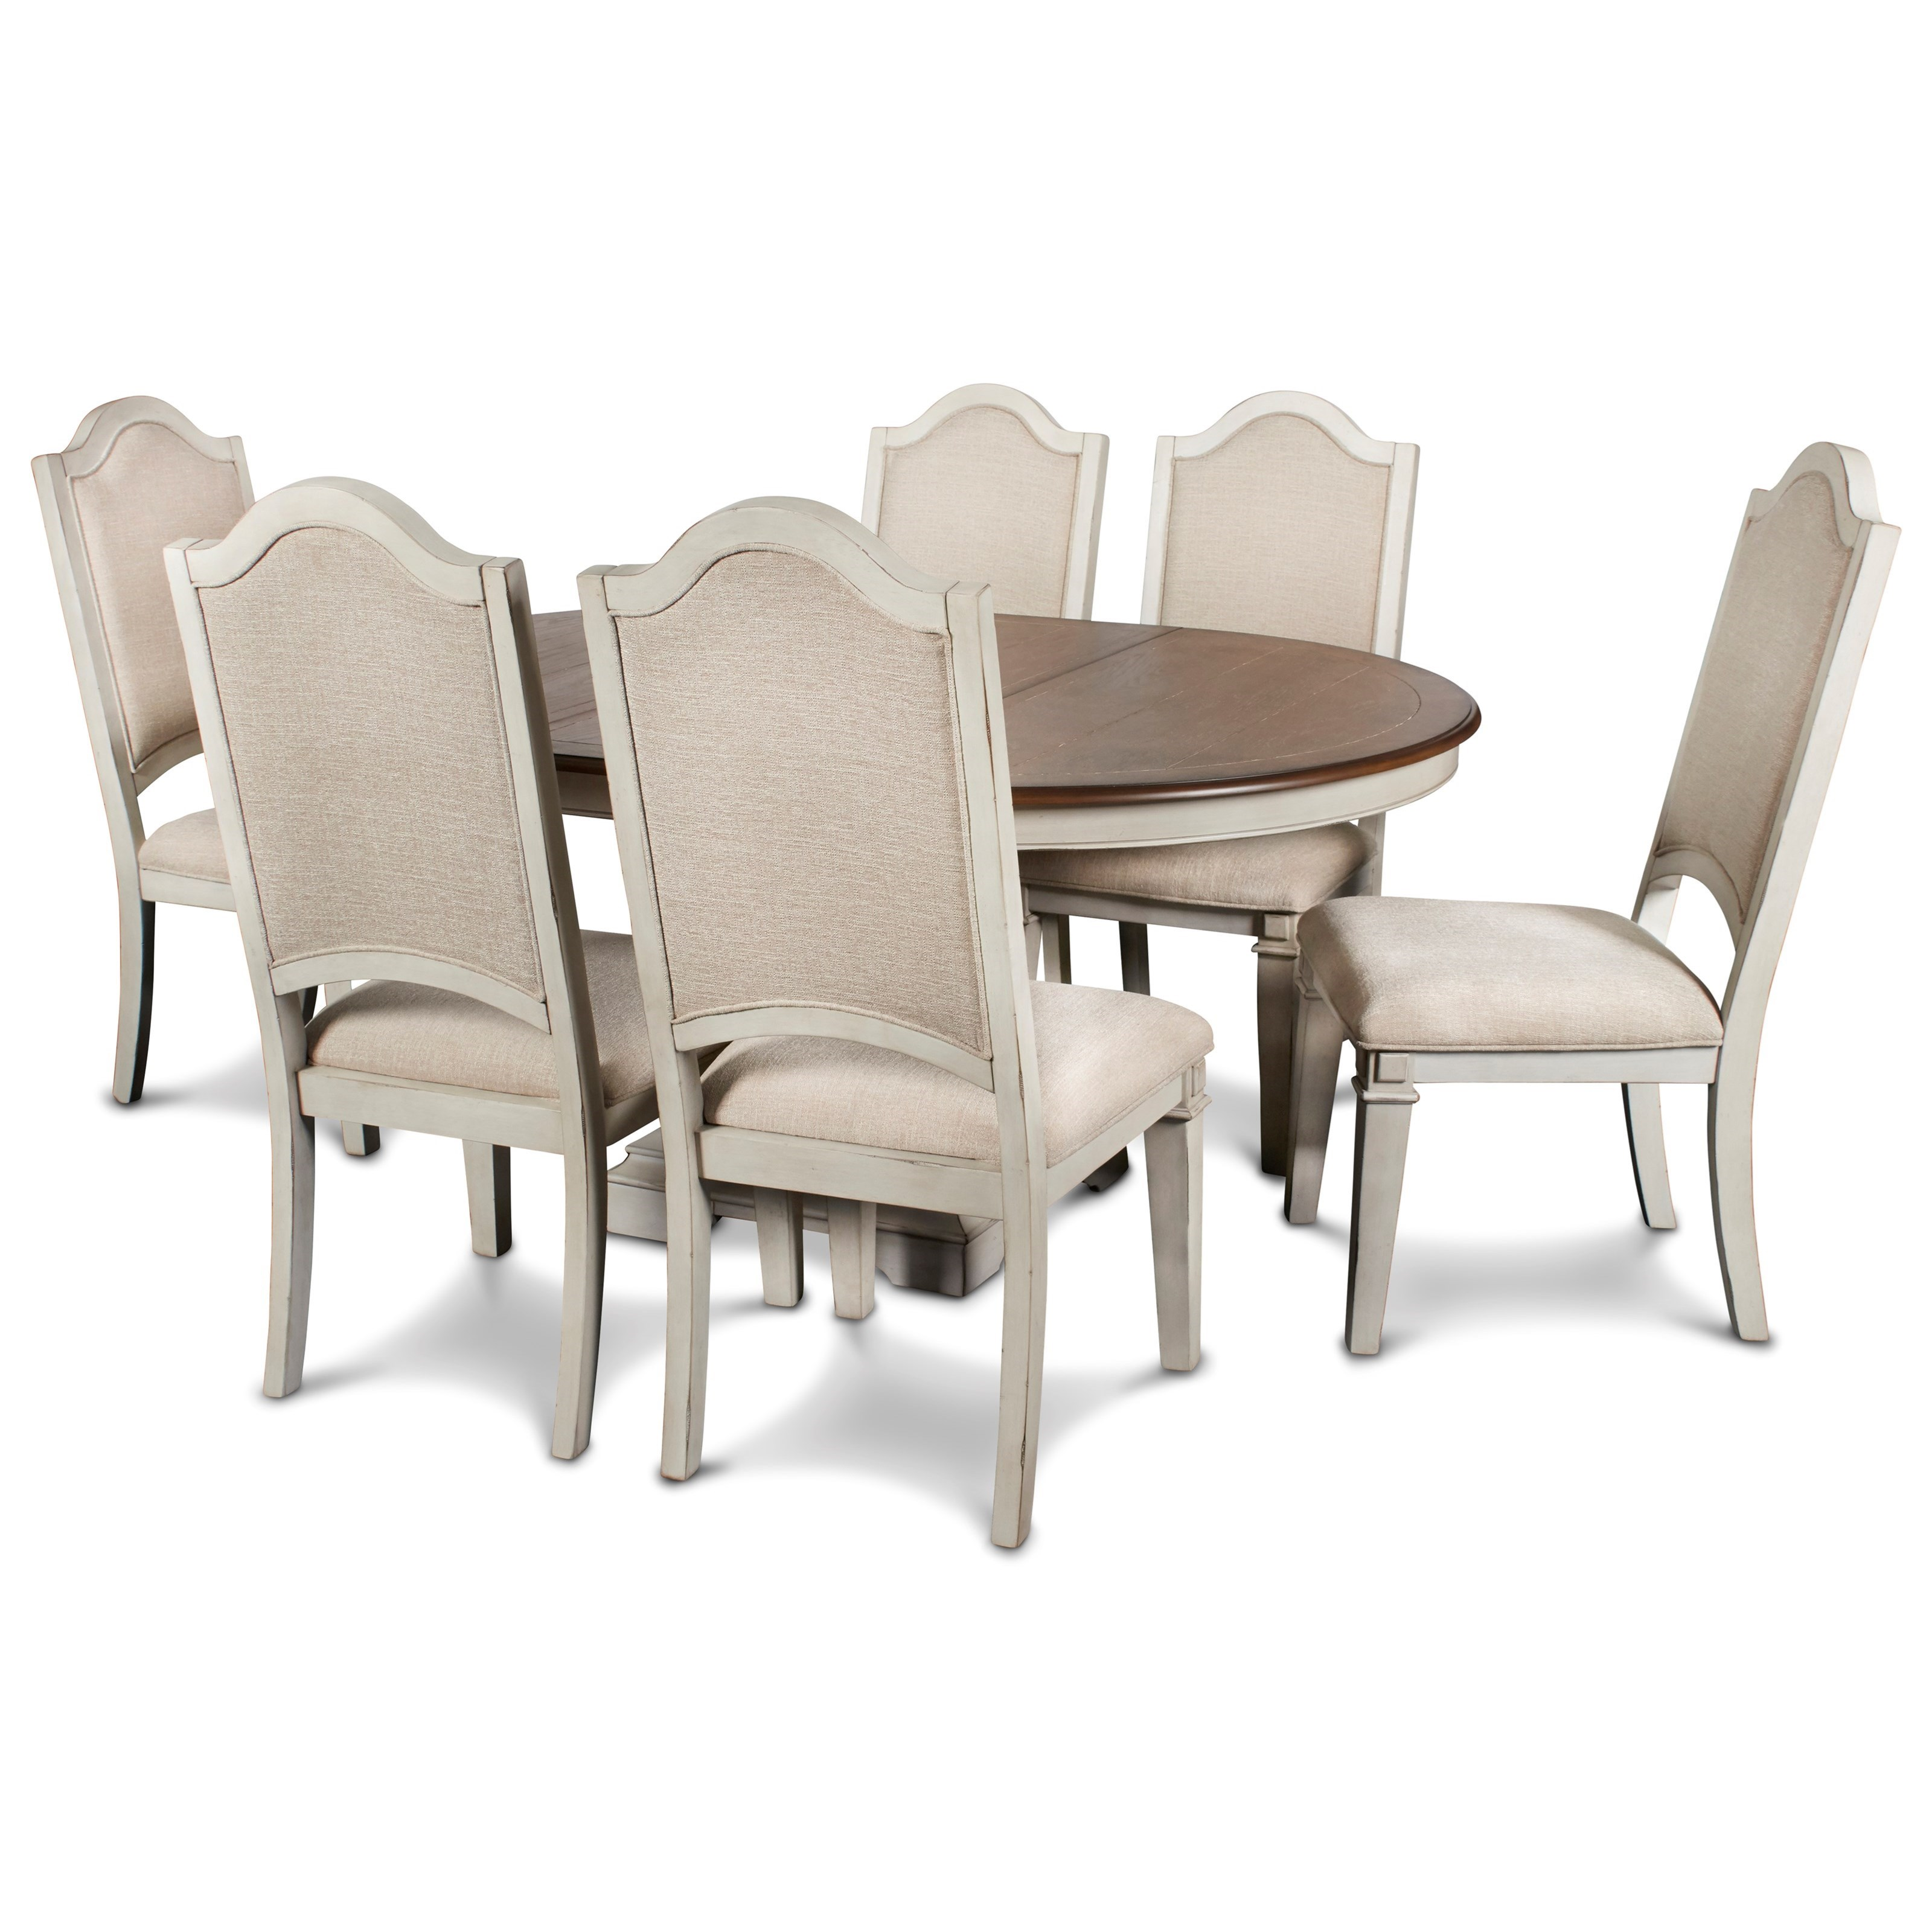 Anastasia 7-Piece Table and Chair Set by New Classic at Beds N Stuff